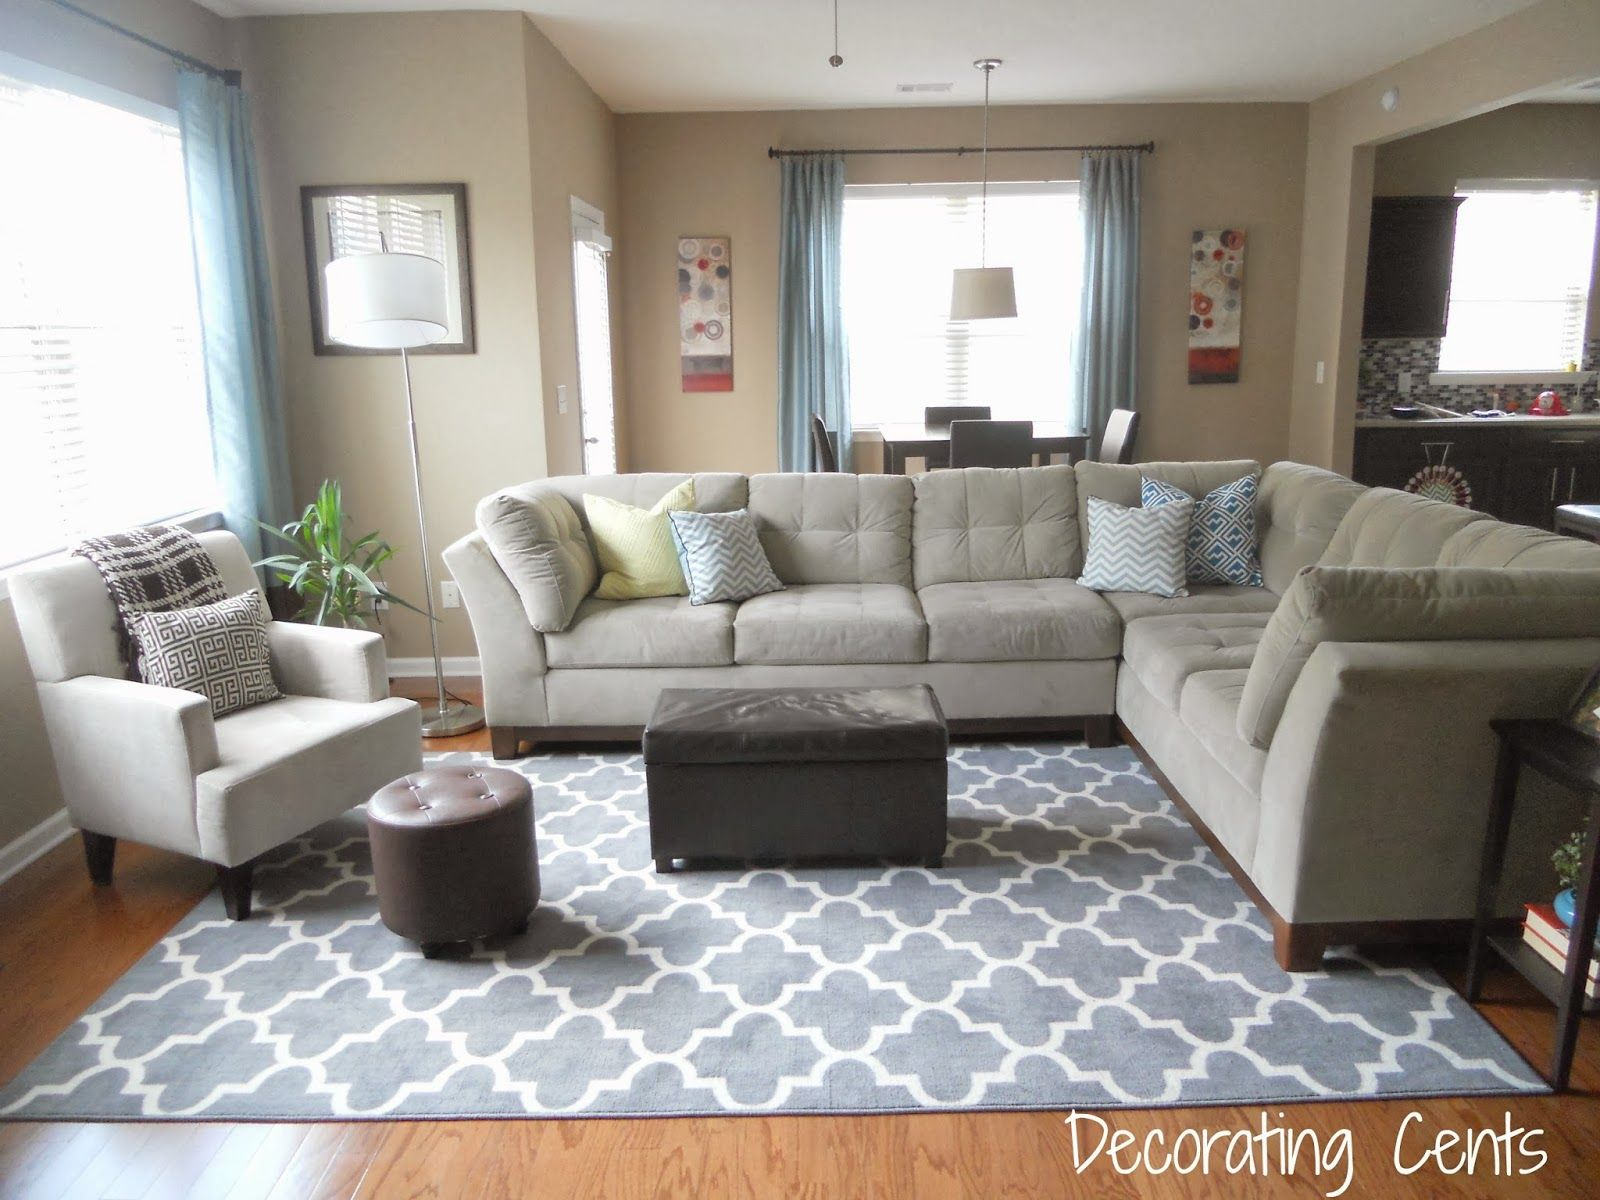 Decorating Cents New Family Room Rug Rugs In Living Room Living Room Rug Placement Living Room Grey